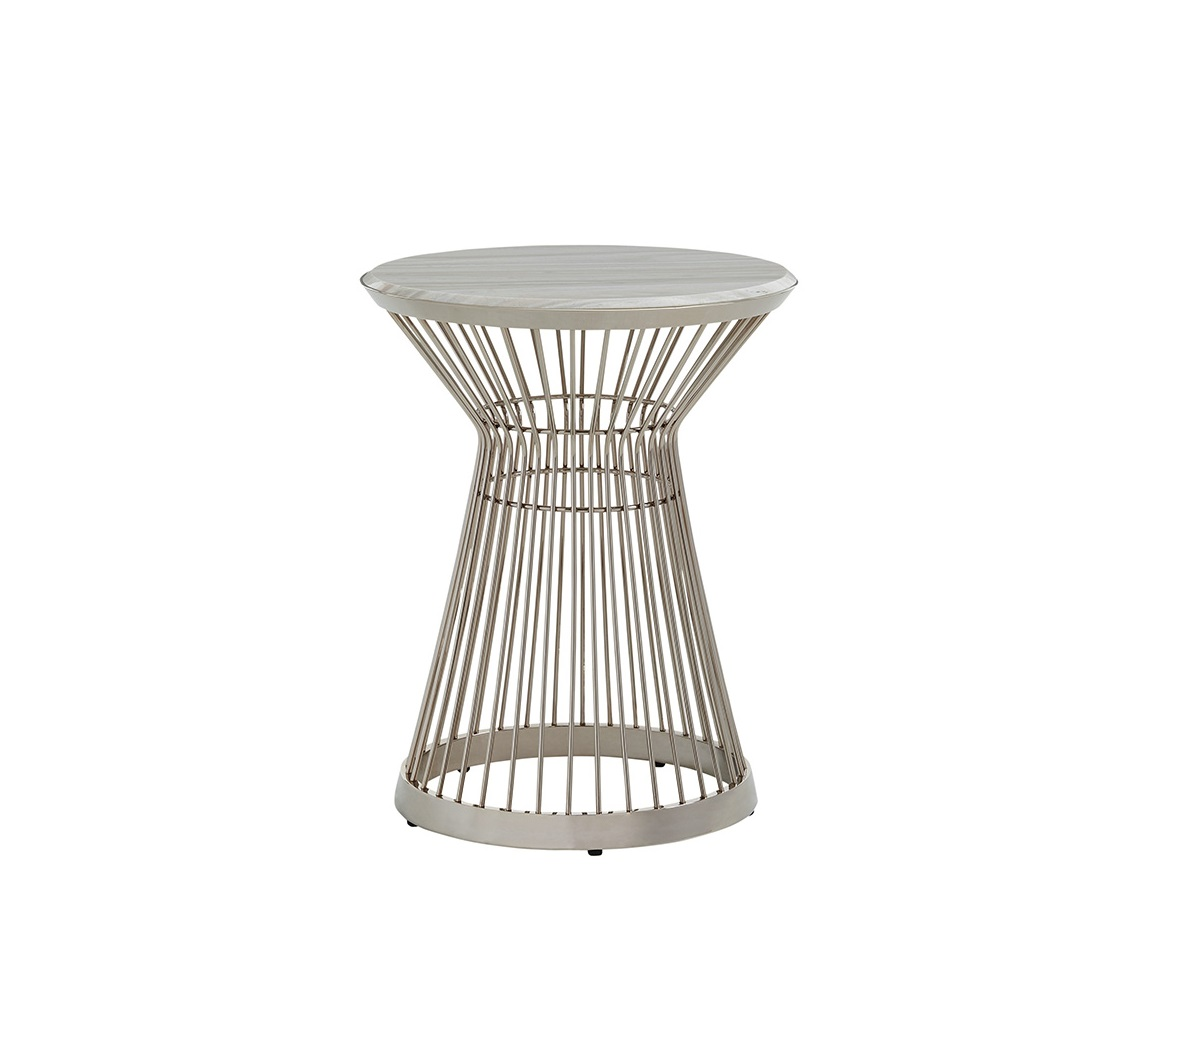 Ariana Martini Stainless Accent Table, Lexington Accent Table